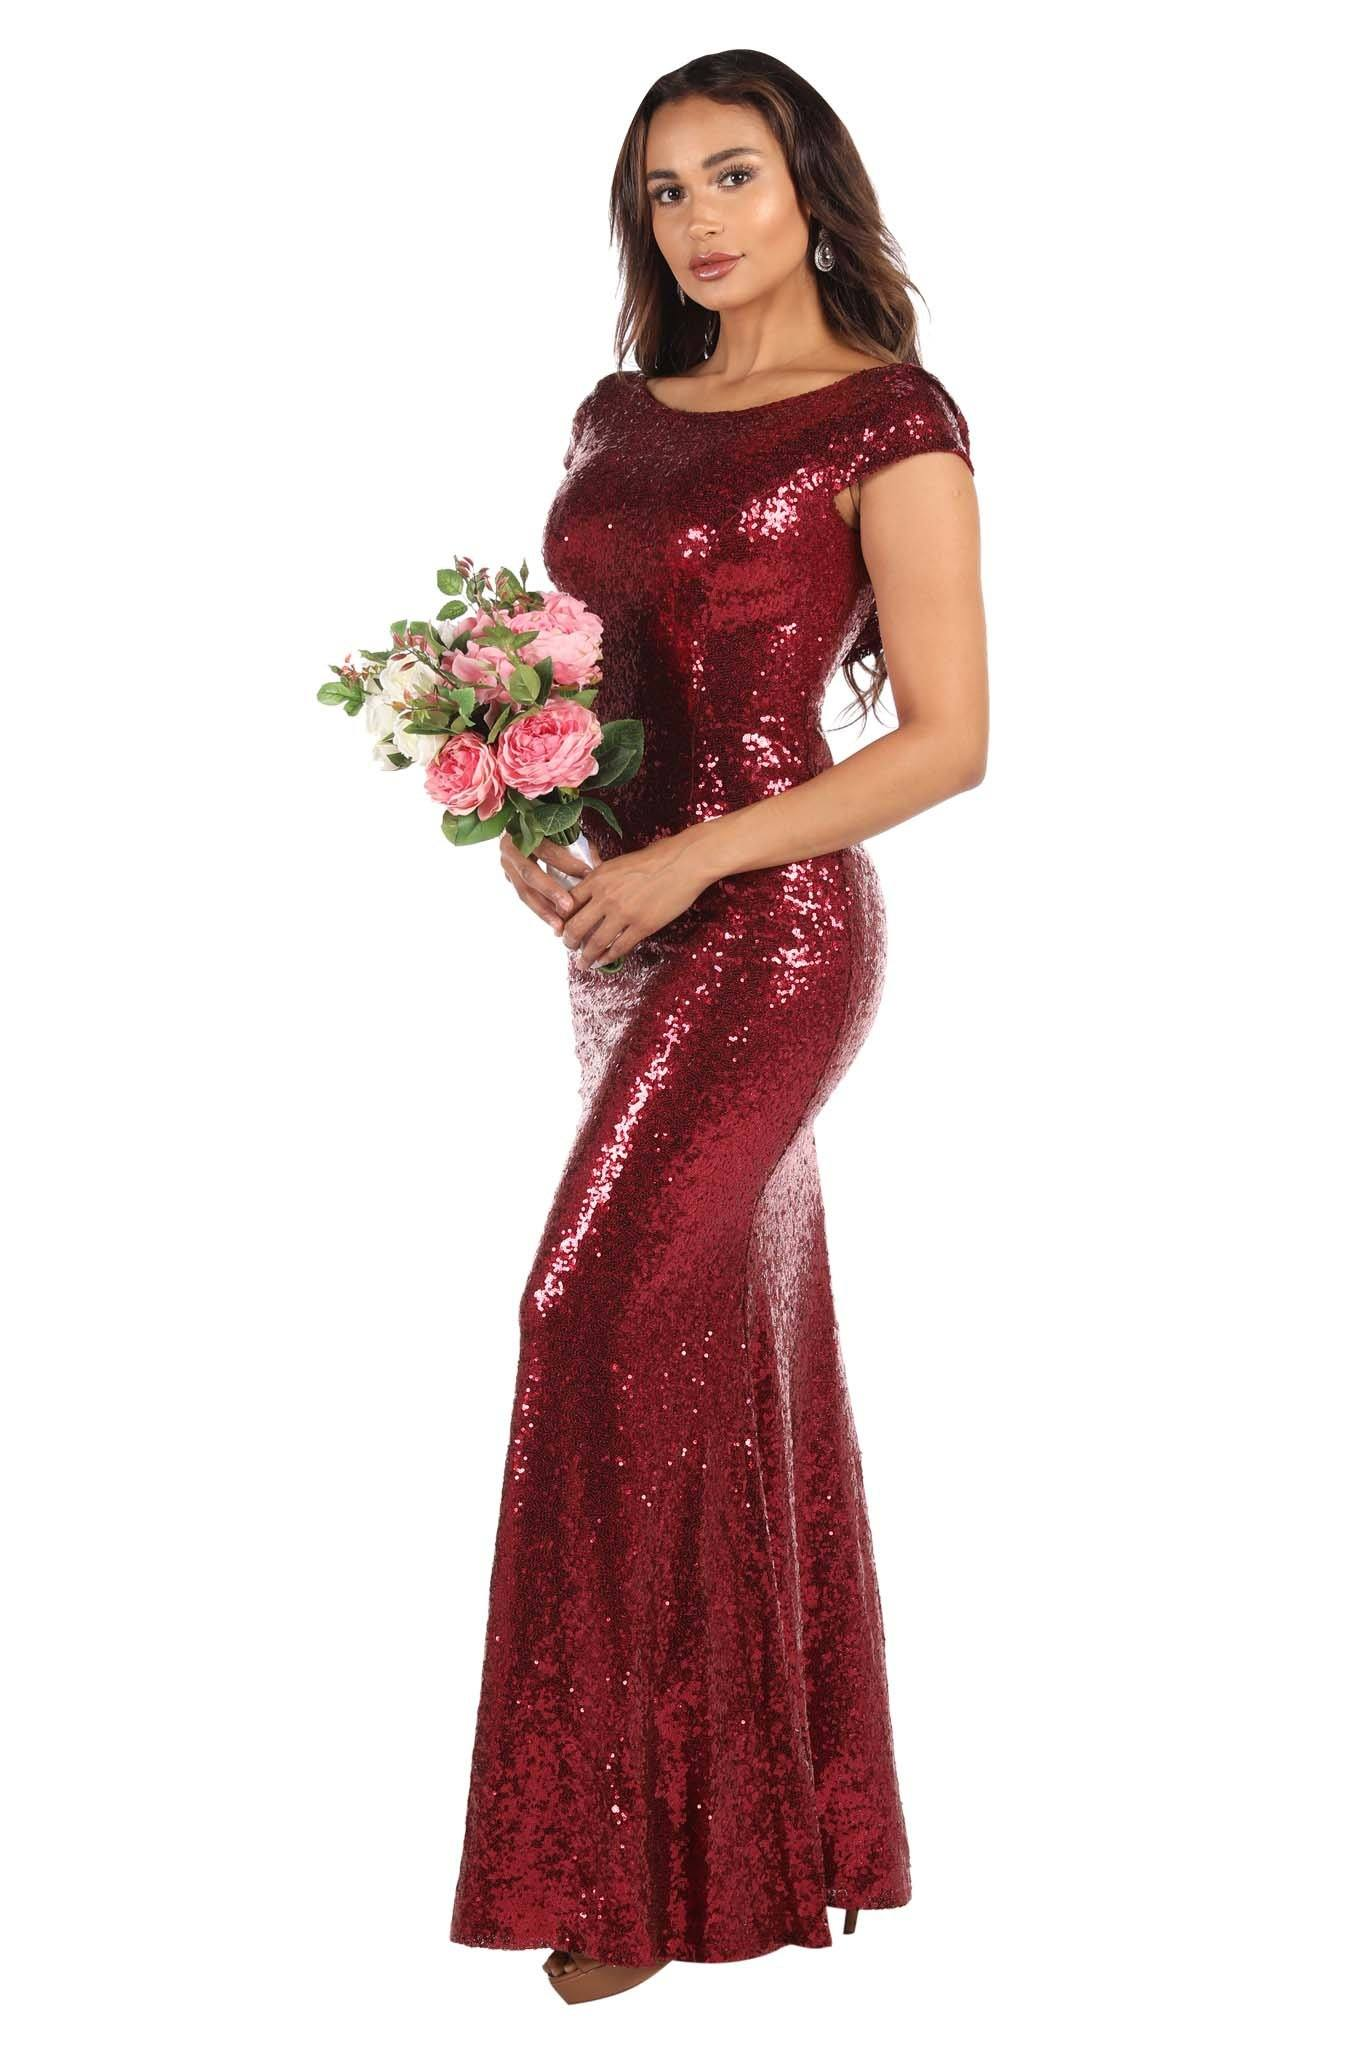 Burgundy Wine Red Coloured Sequin Bridesmaid Maxi Dress with Boat Neckline and Cowl Back Design